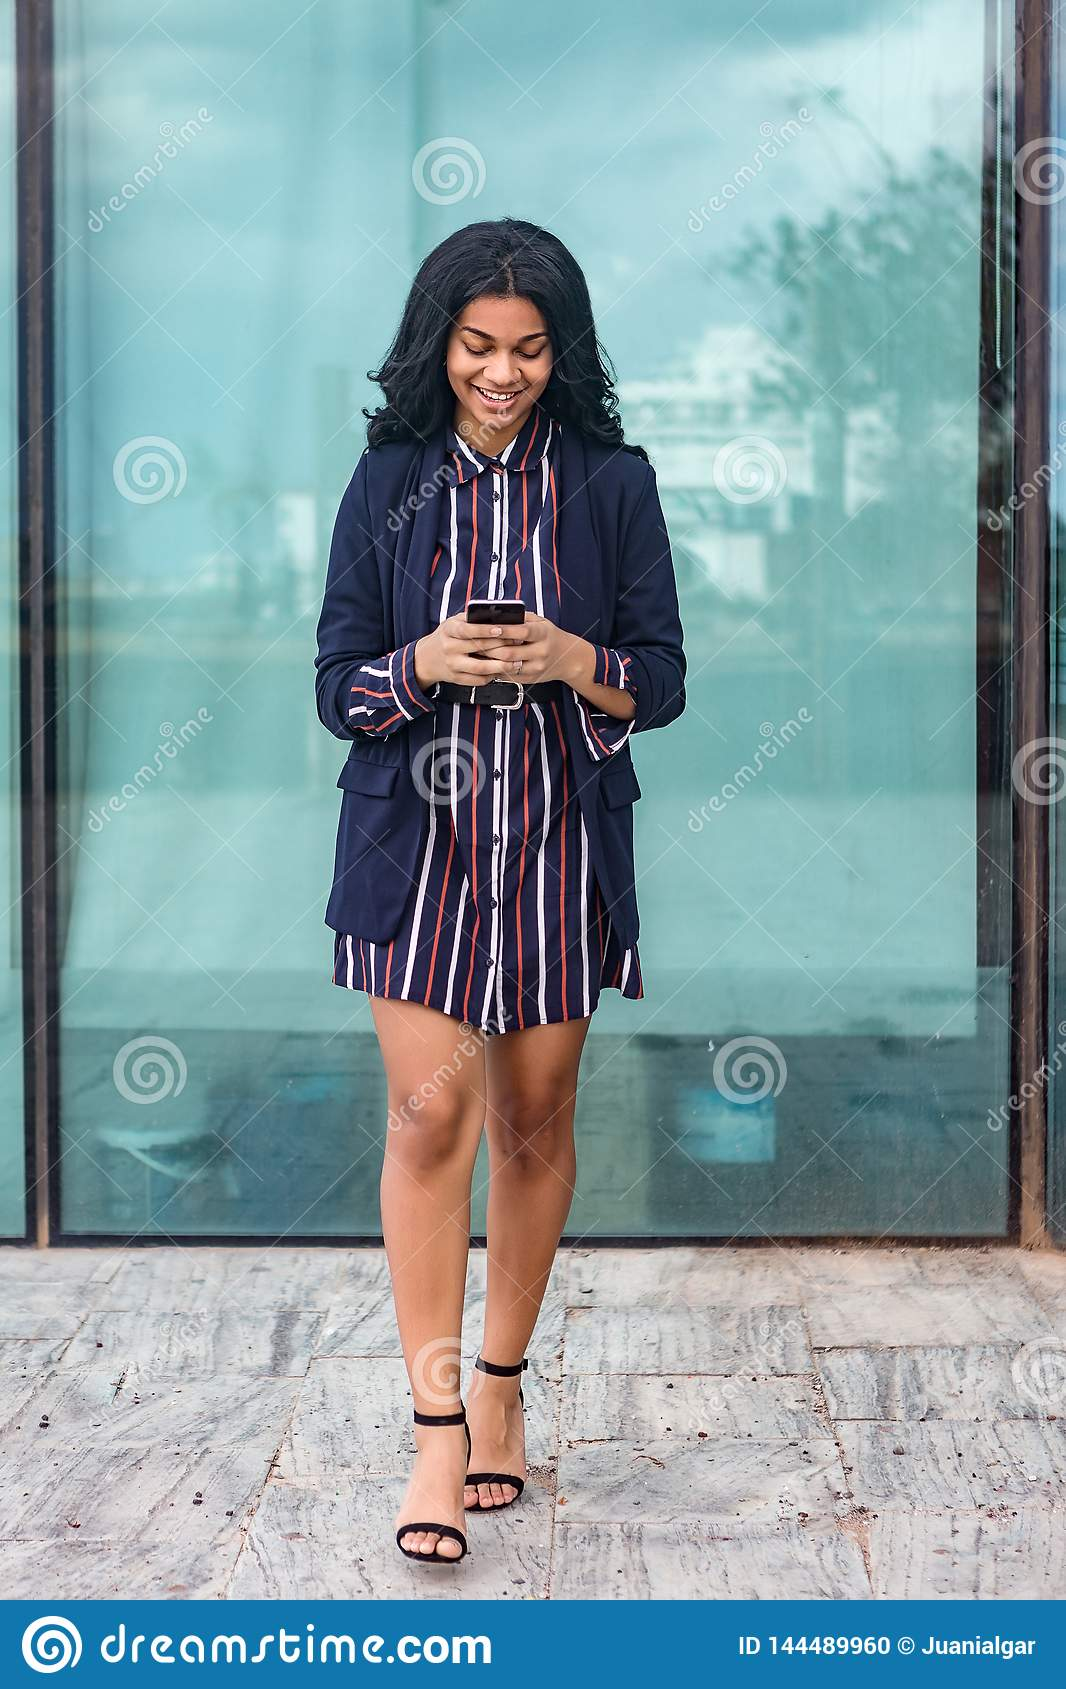 Black business woman with smart phone